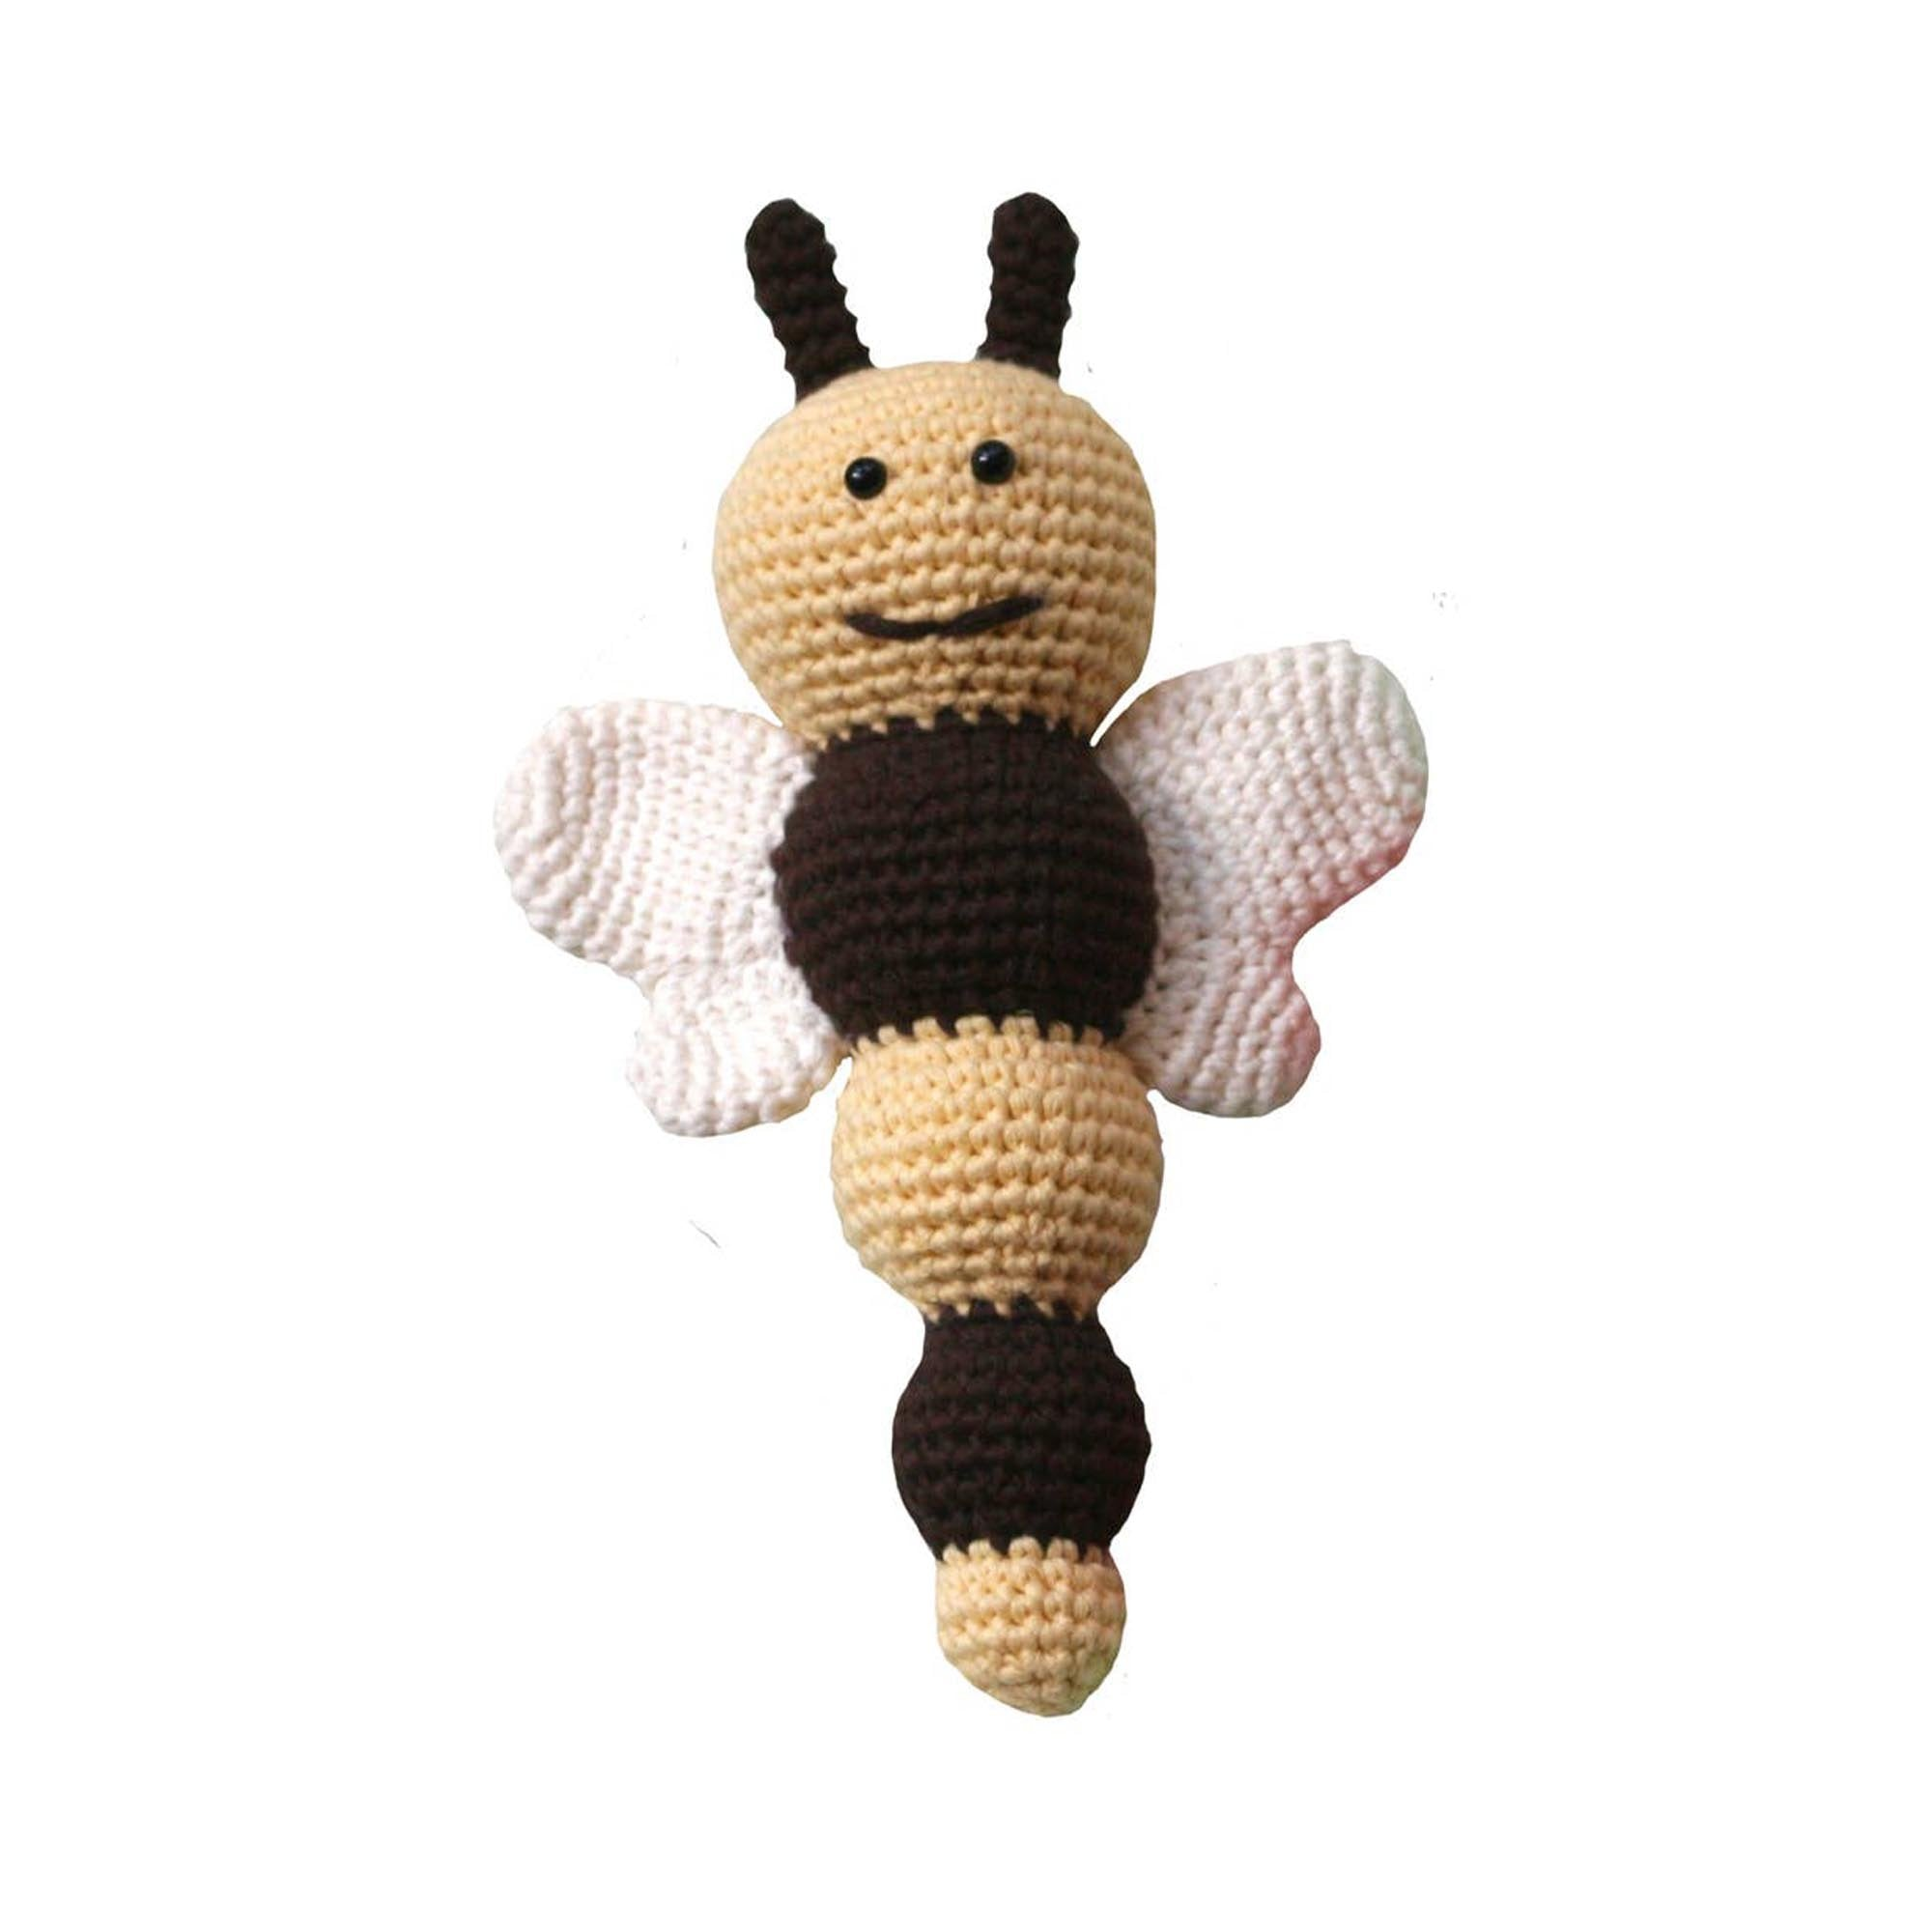 handmade, knitted baby rattle, shaped like a smiling bumble bee, soft earth tone colors displayed on white backdrop